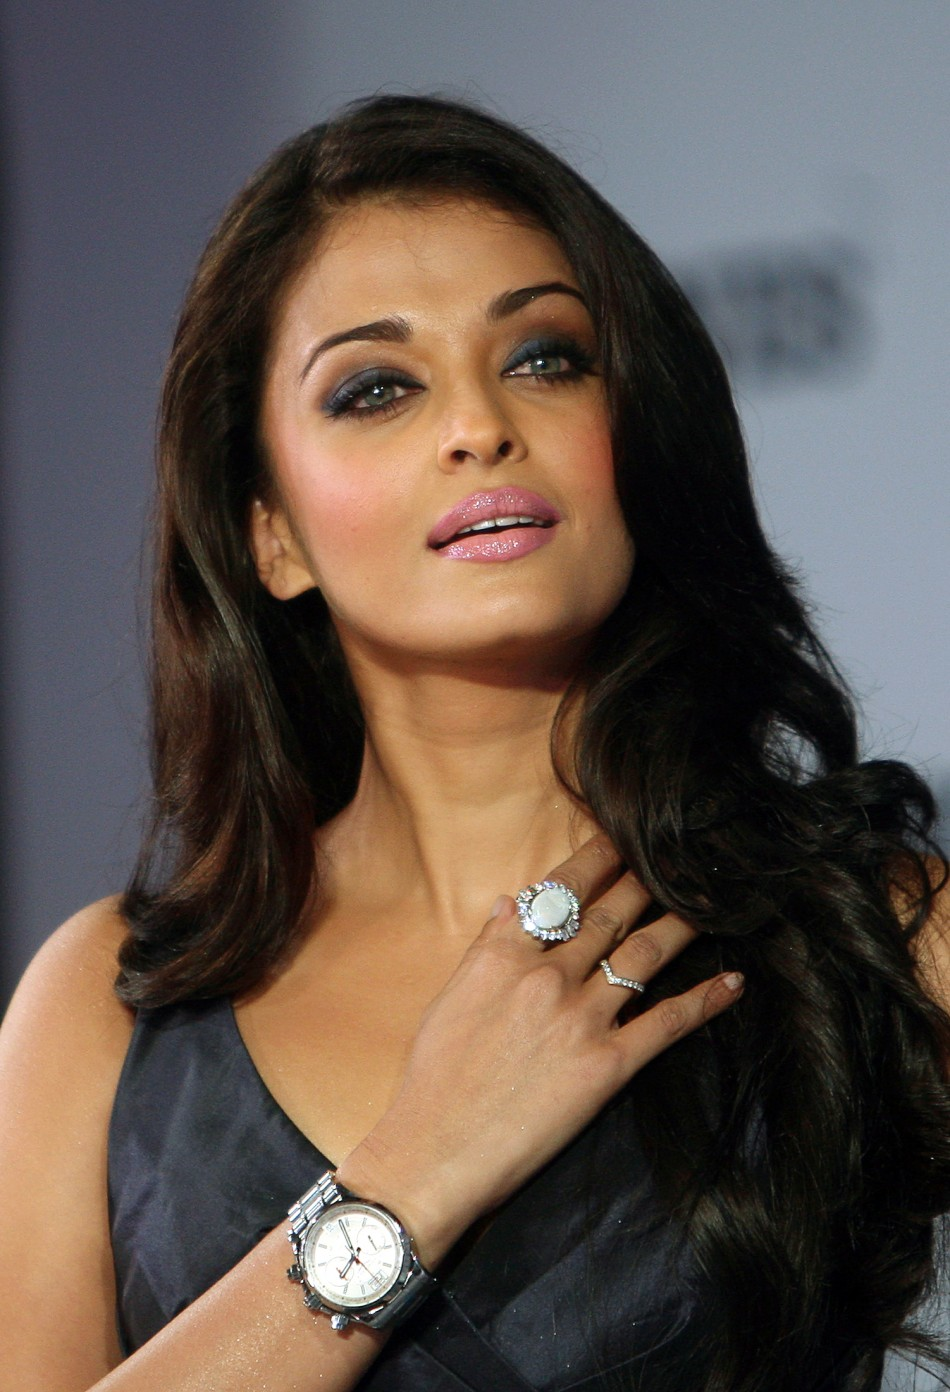 Aishwarya Rai Bachchan is the brand ambassador of Longines